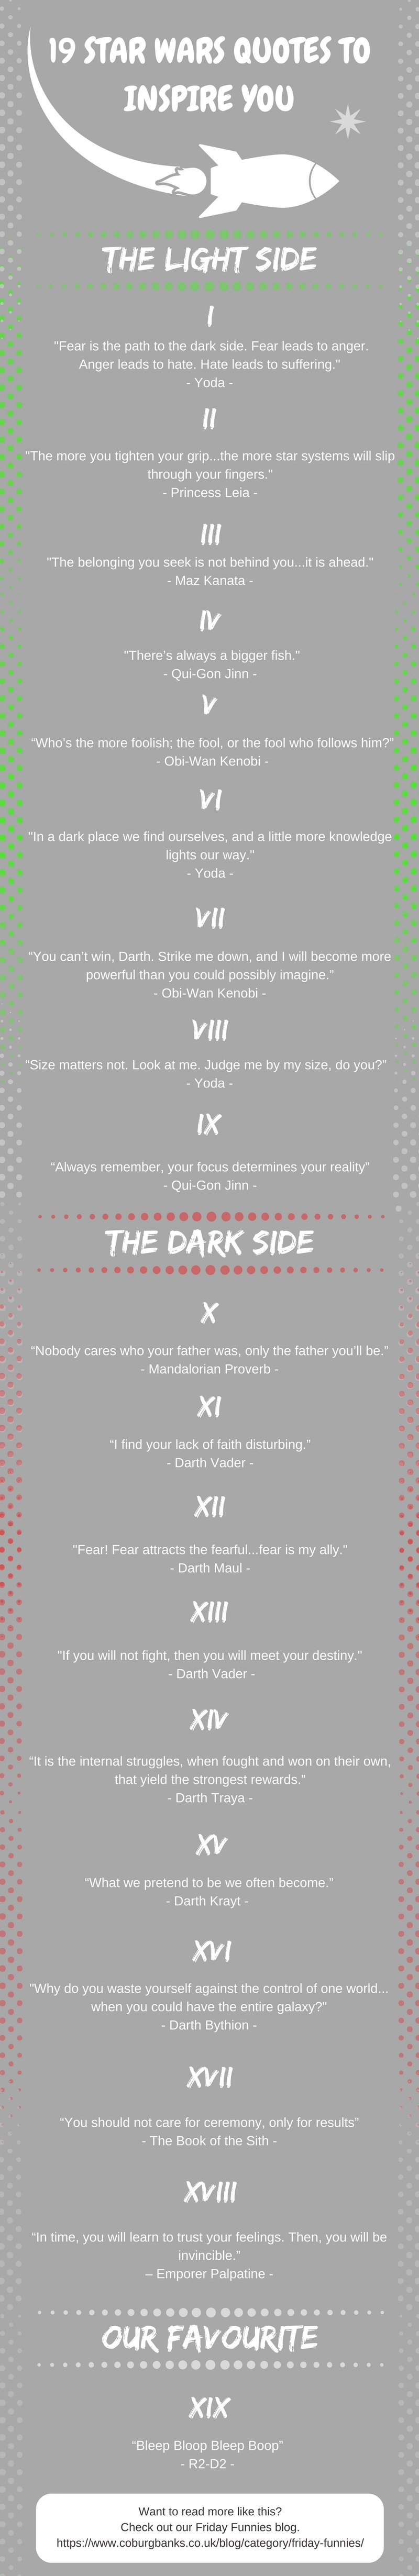 19 Star Wars Quotes to Inspire You